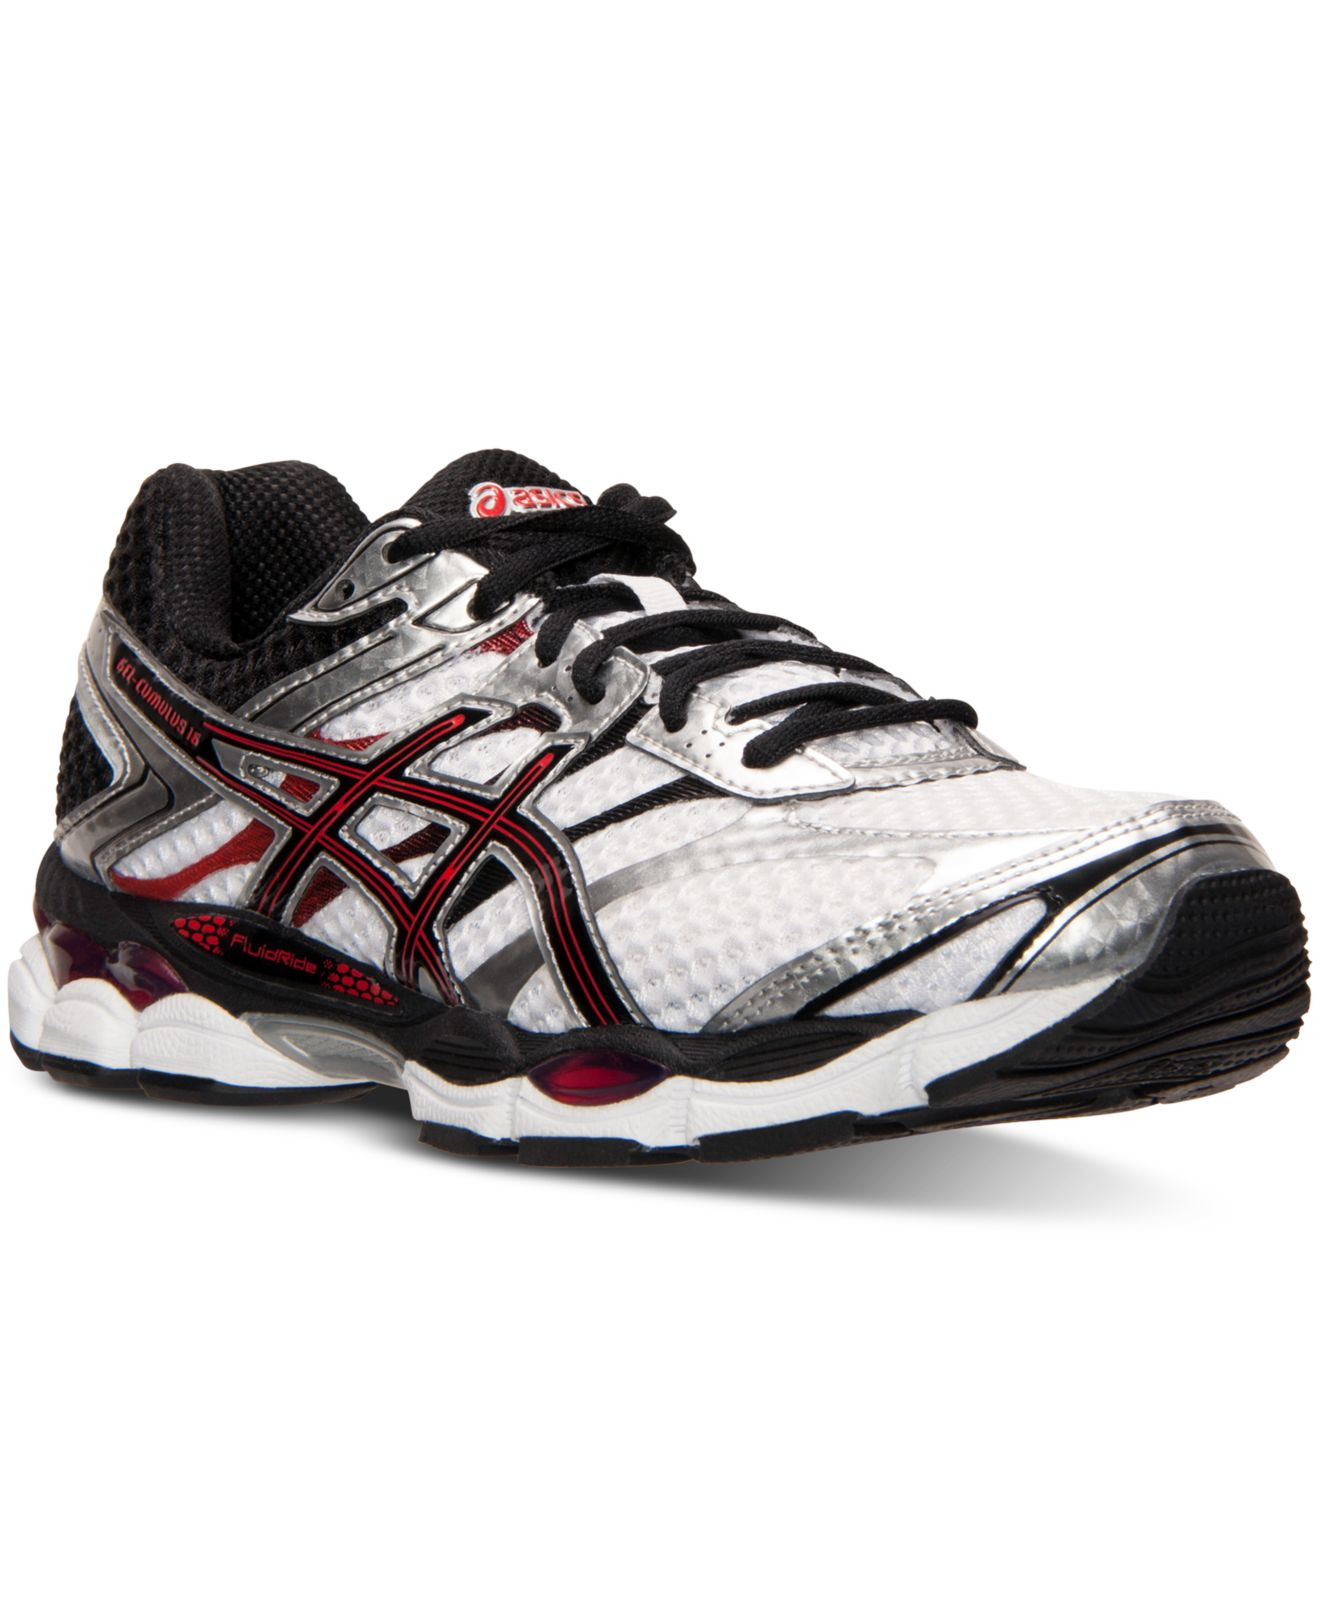 asics men 39 s gel cumulus 16 4e wide running sneakers from finish line in white for men lyst. Black Bedroom Furniture Sets. Home Design Ideas